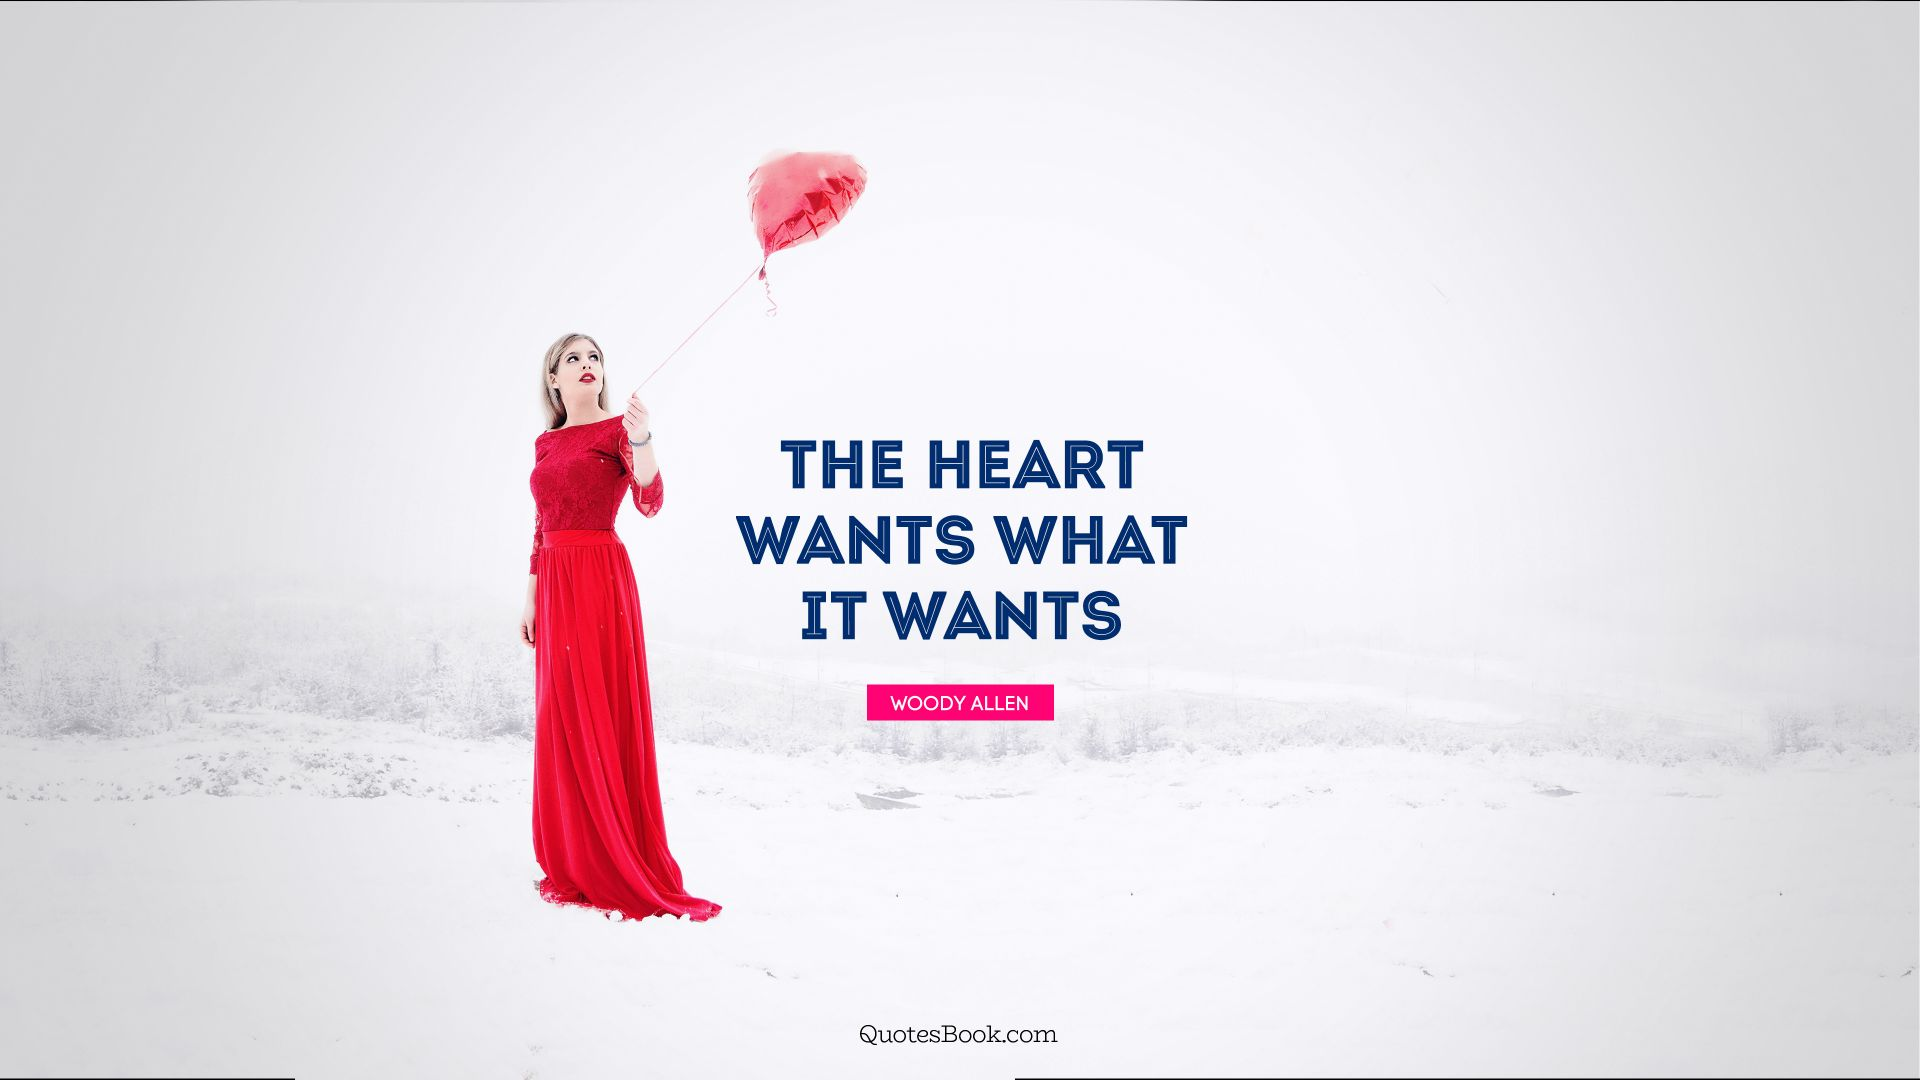 The heart wants what it wants. - Quote by Woody Allen